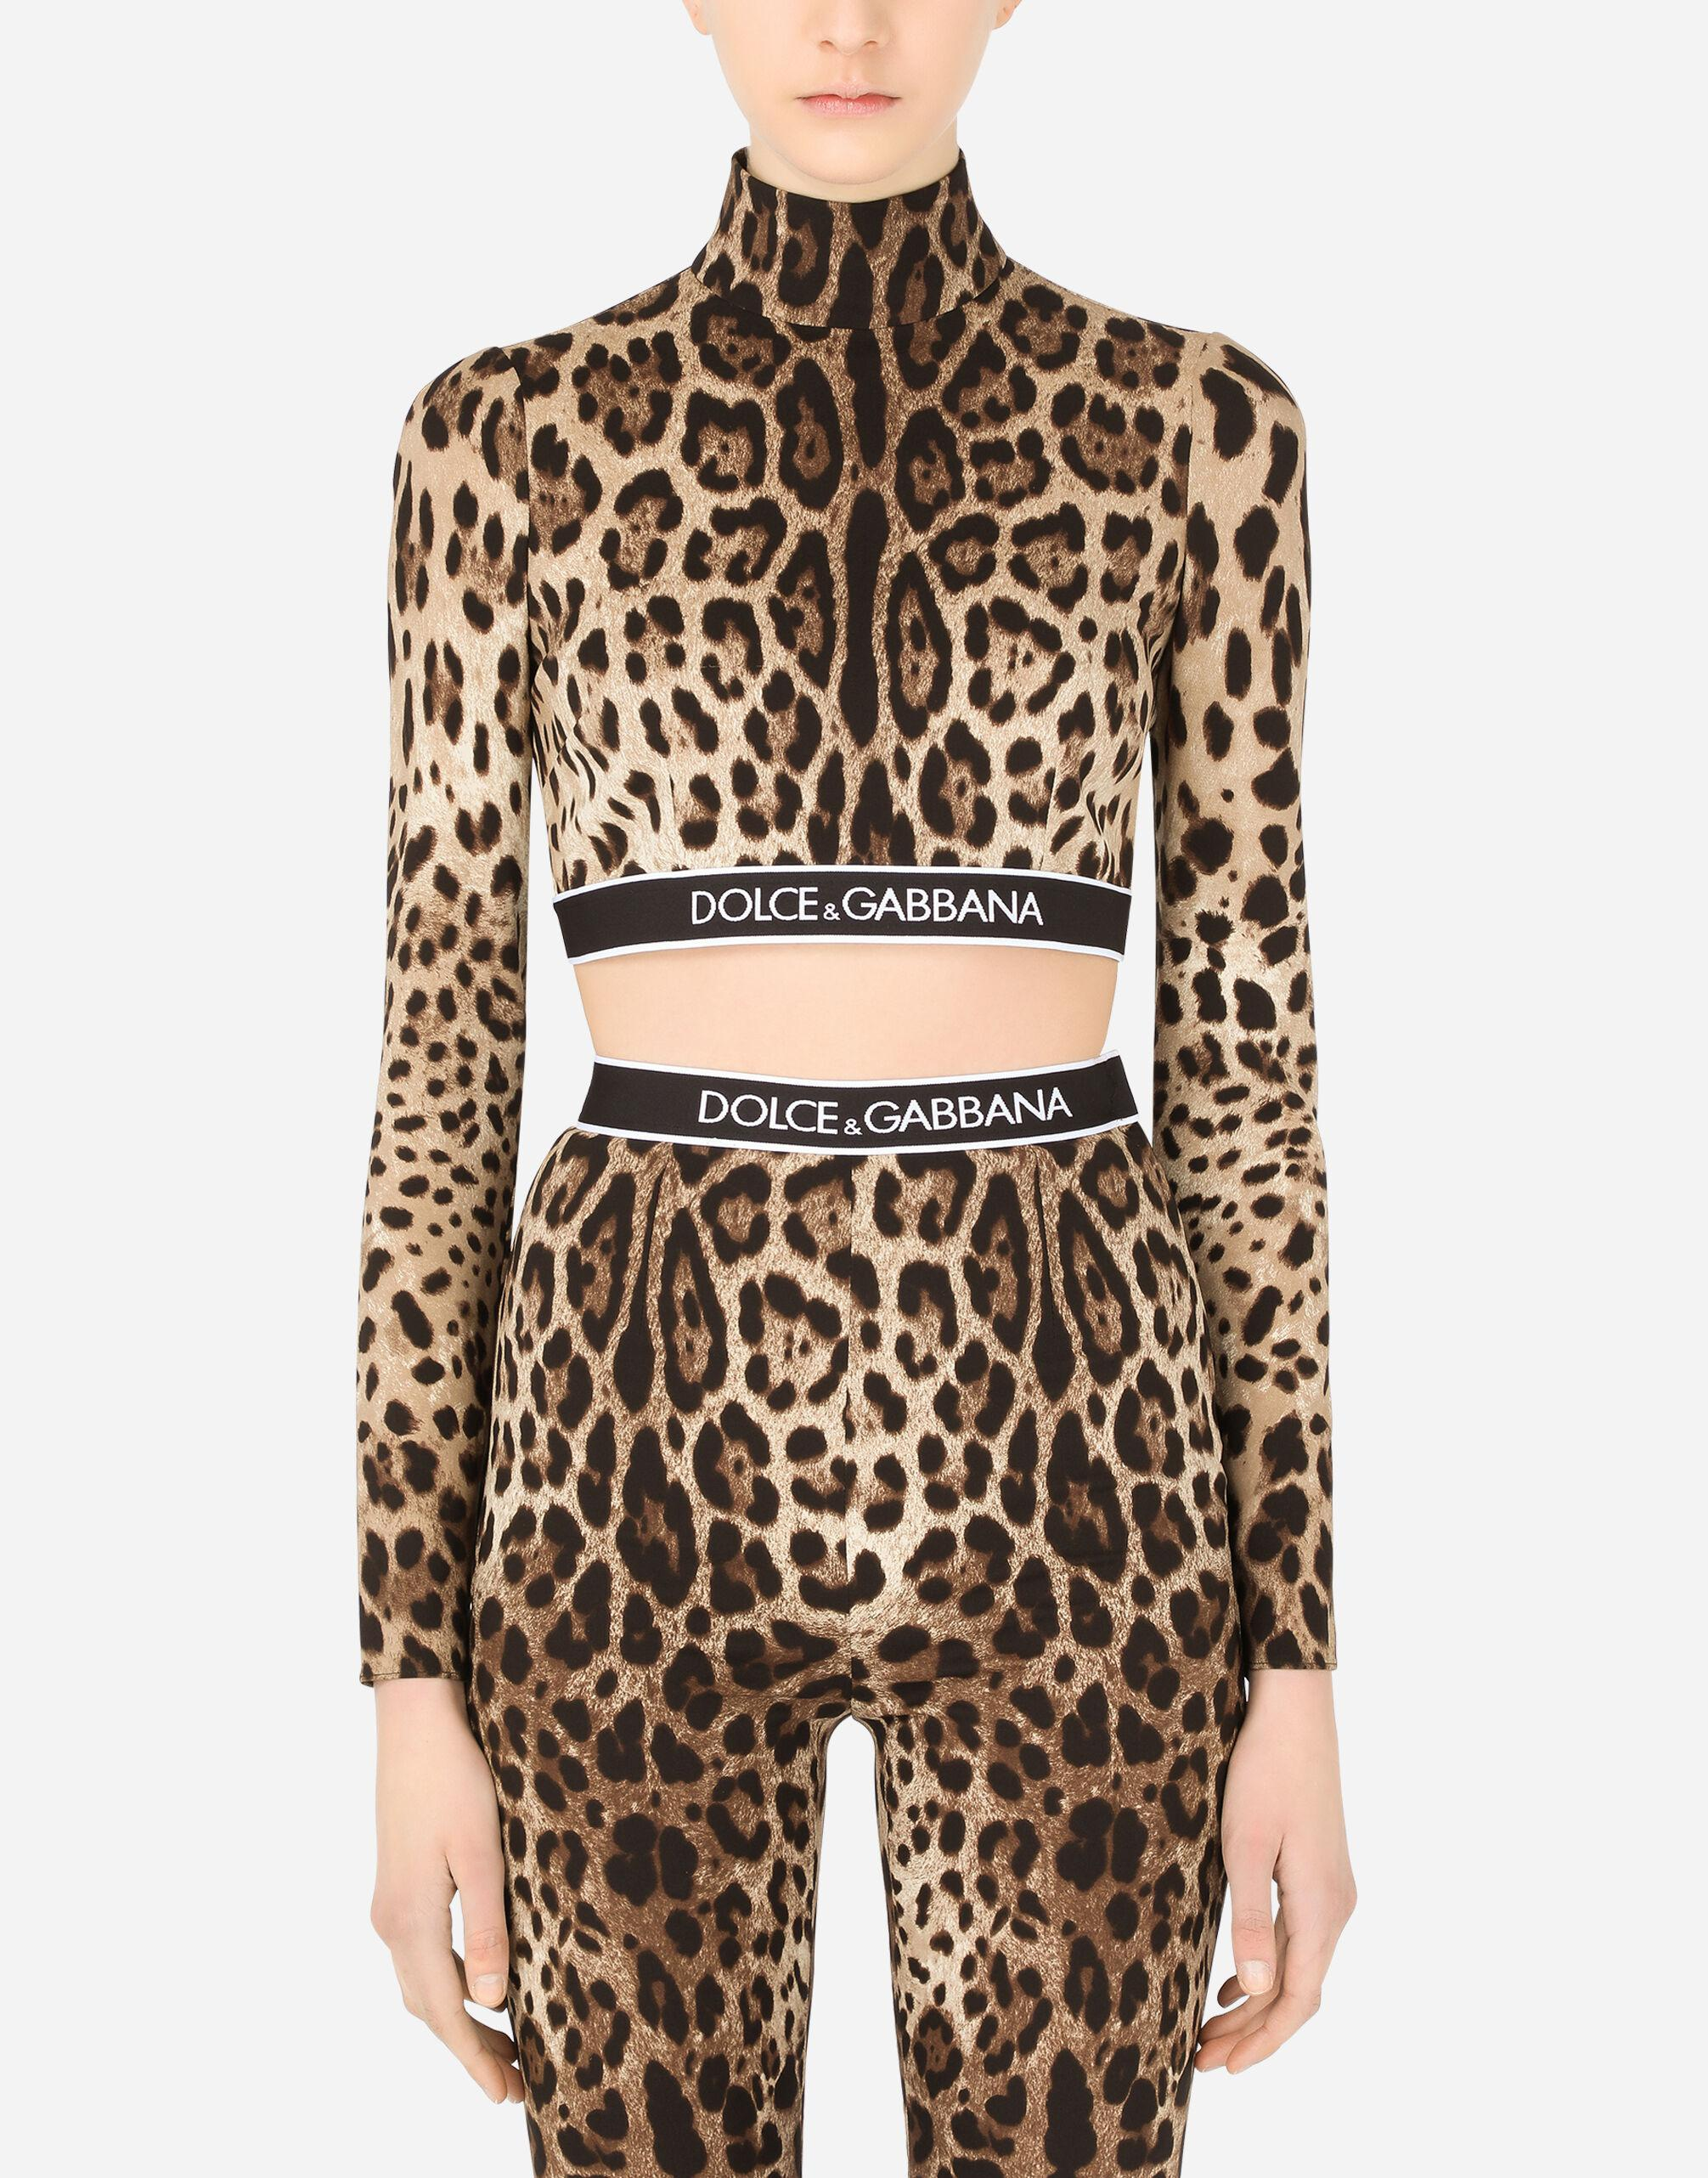 Long-sleeved leopard-print charmeuse top with branded elastic